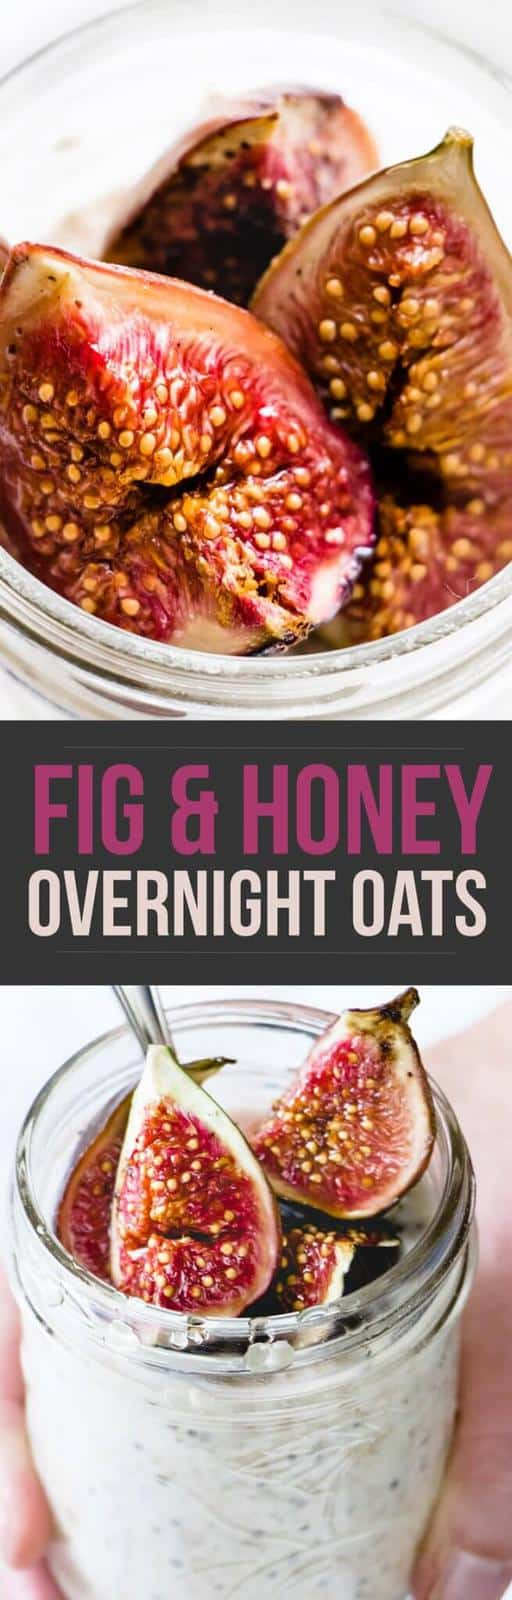 These fig & honey overnight oats are the perfect get up and go breakfast. They're creamy and sweet with a hint of salt and earthy sweet fig notes.